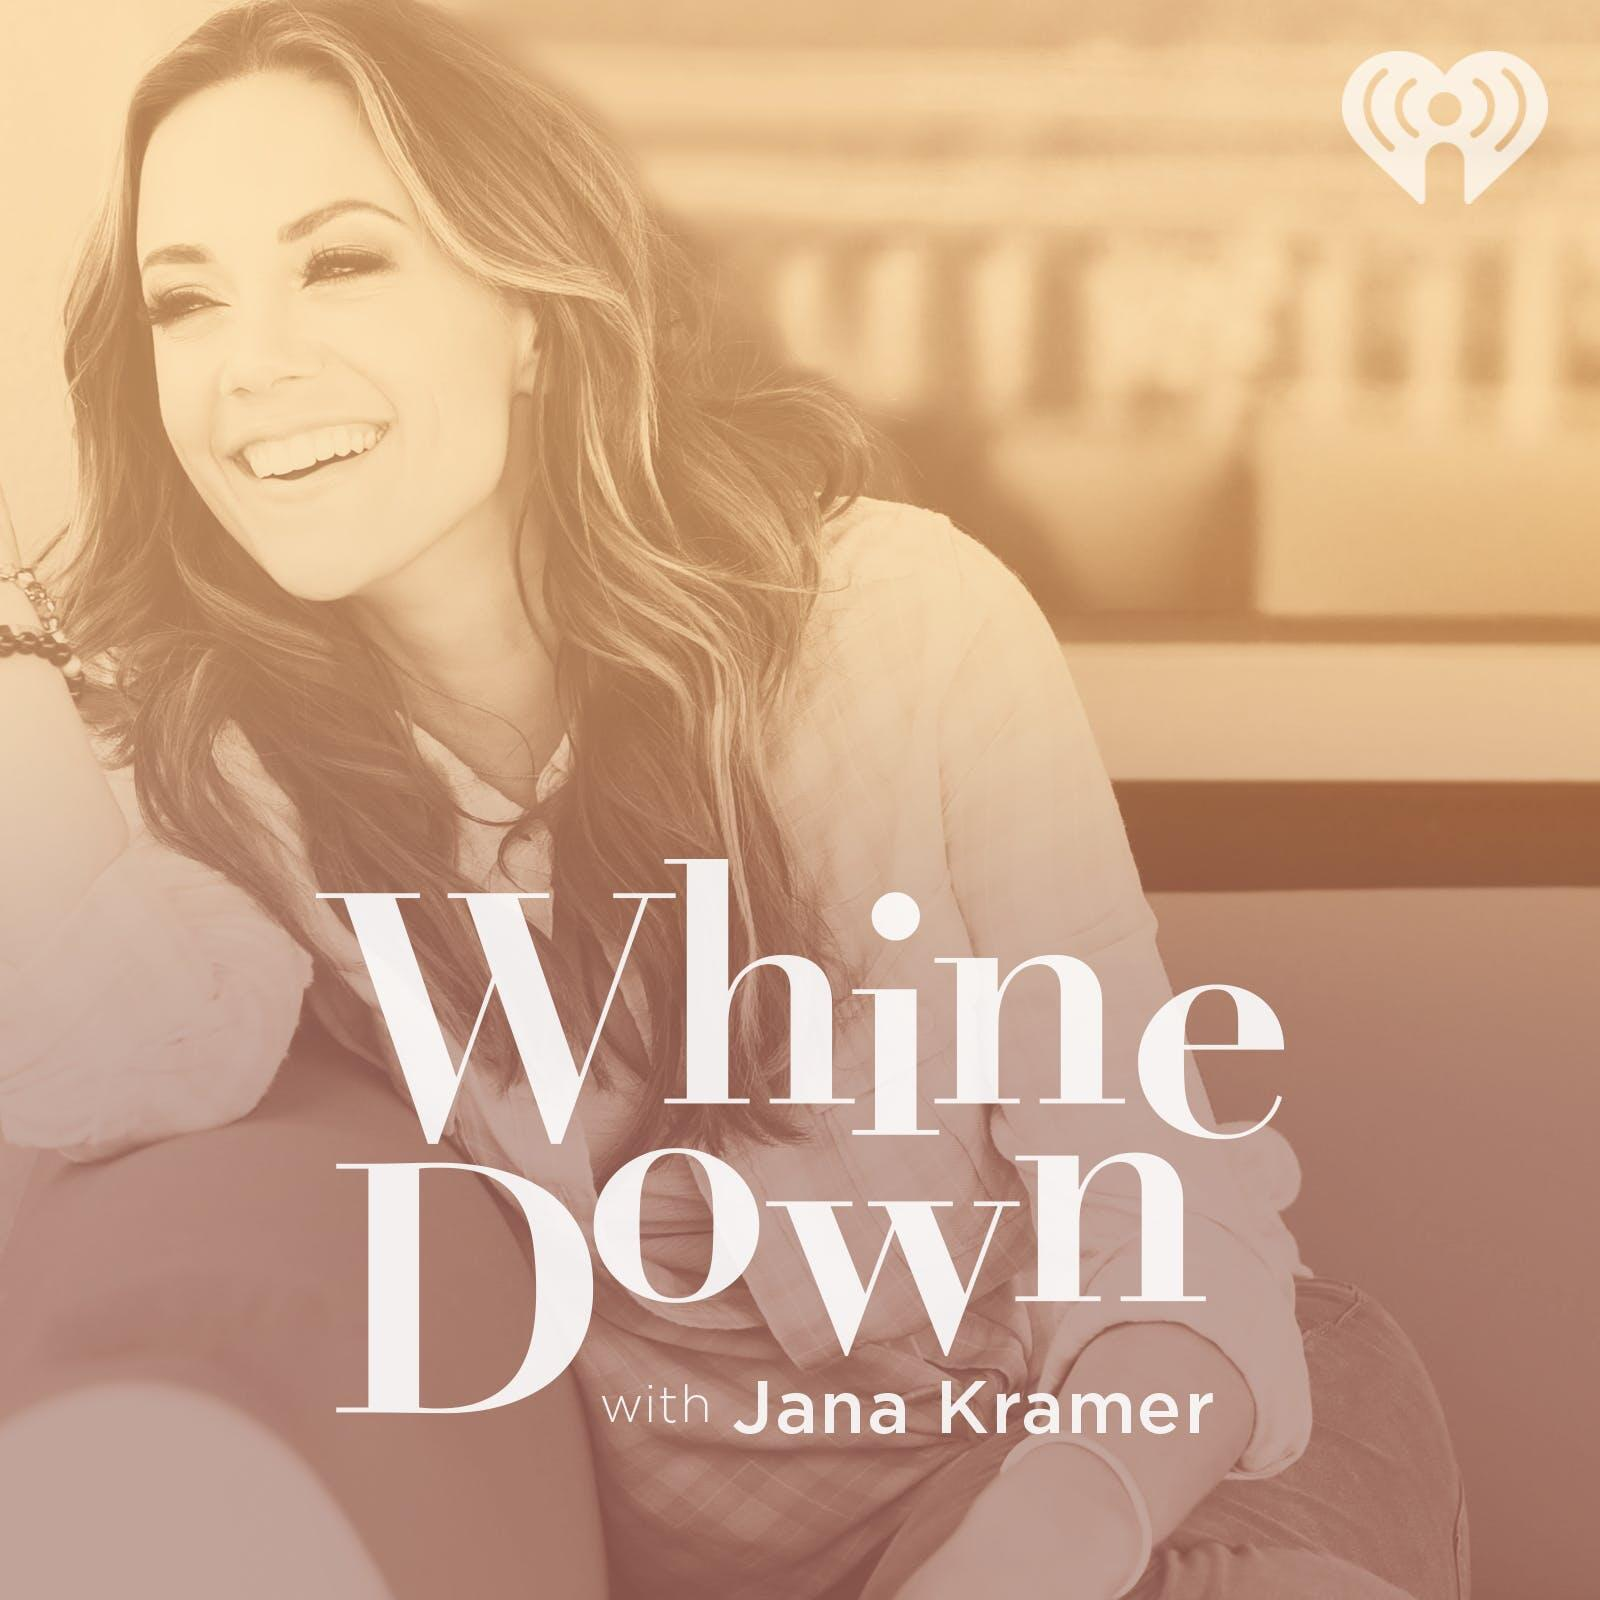 Listen Free to Whine Down with Jana Kramer on iHeartRadio Podcasts